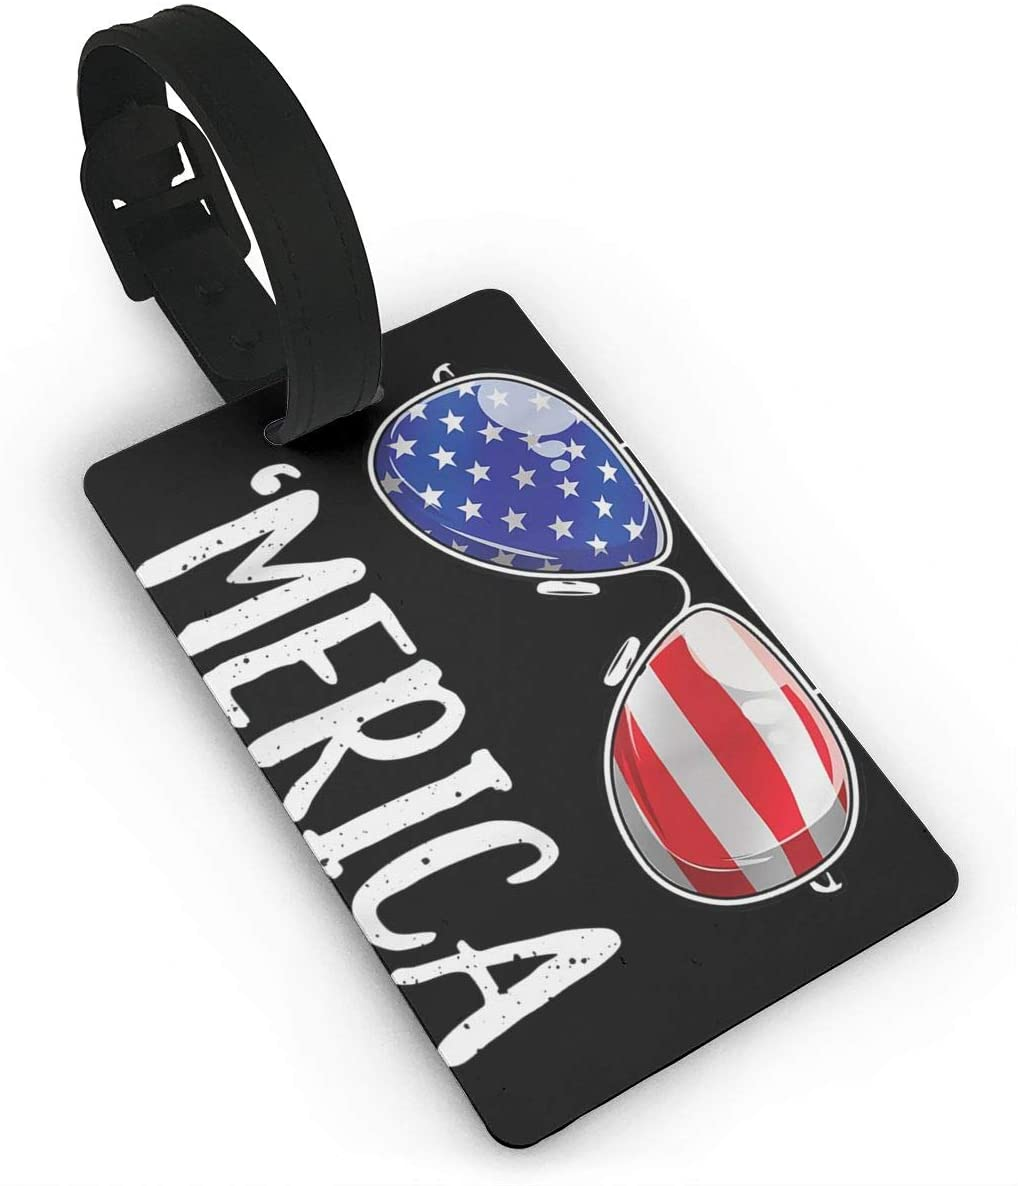 Merica Sunglasses Tags Carry On Cards Expression Luggage Tag Travel Card Bag Label Card Identity Card Baggage Tags